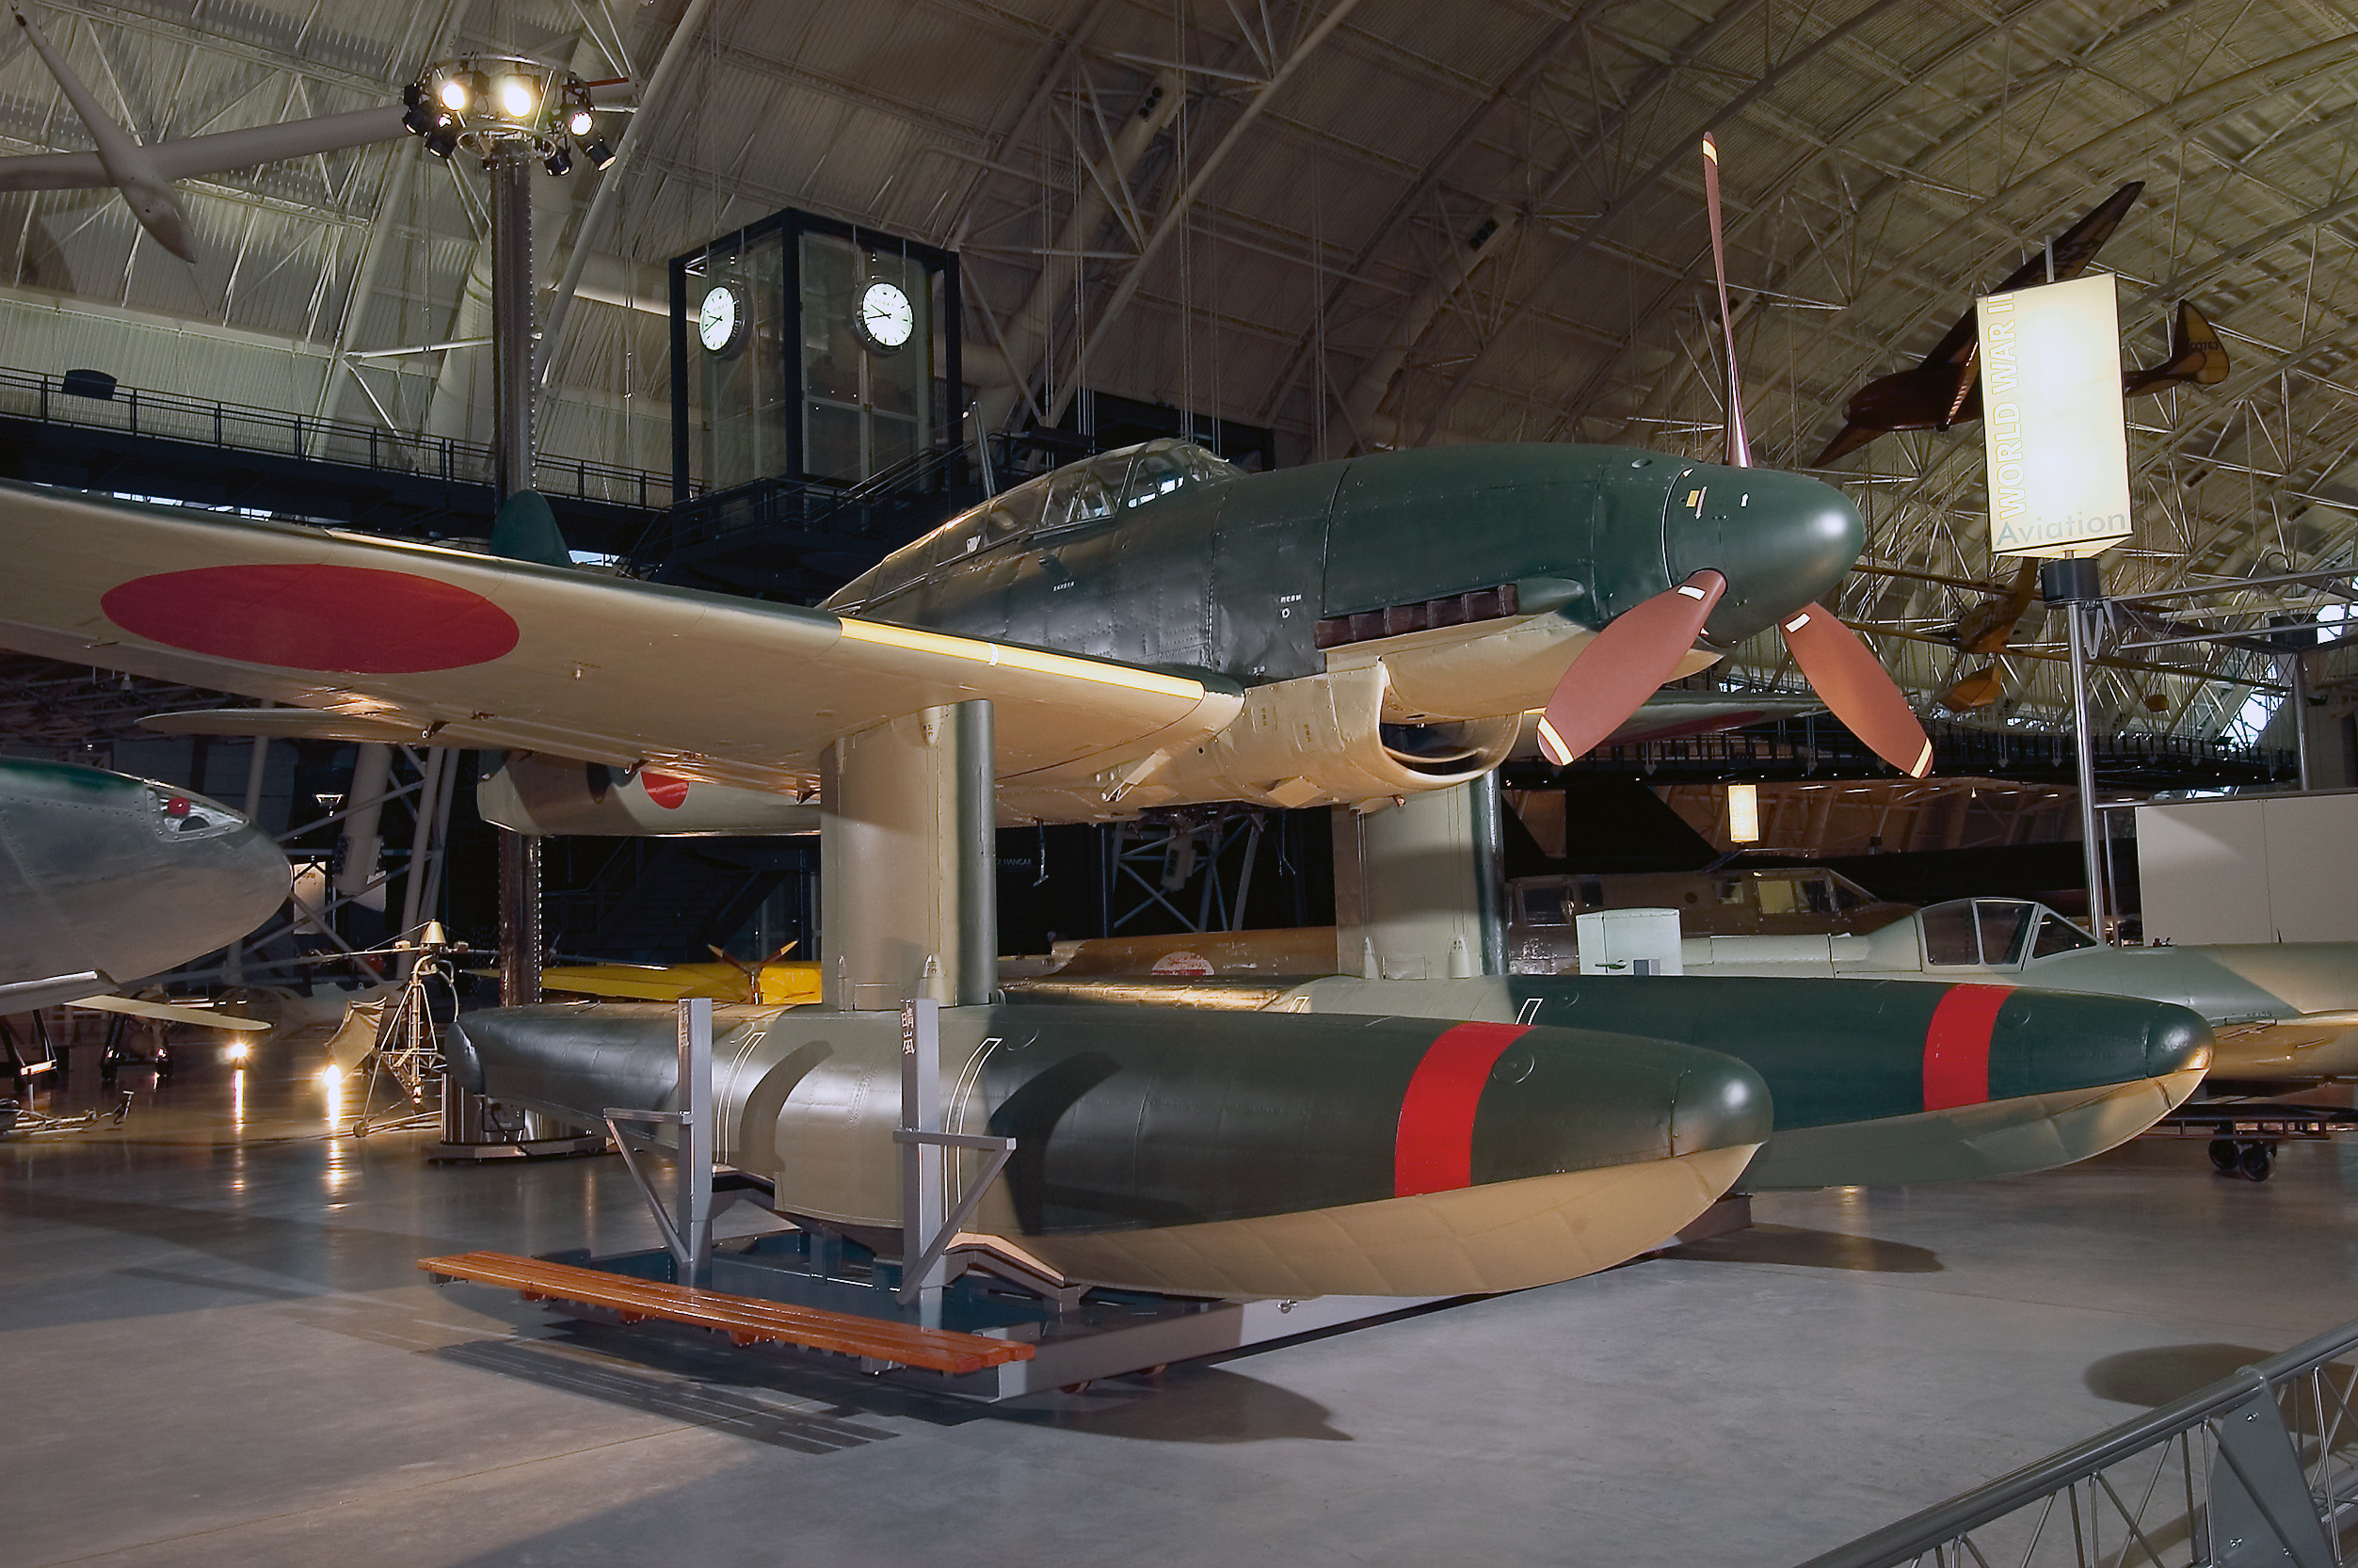 Aichi M6A1 Seiran at the Udvar-Hazy Center